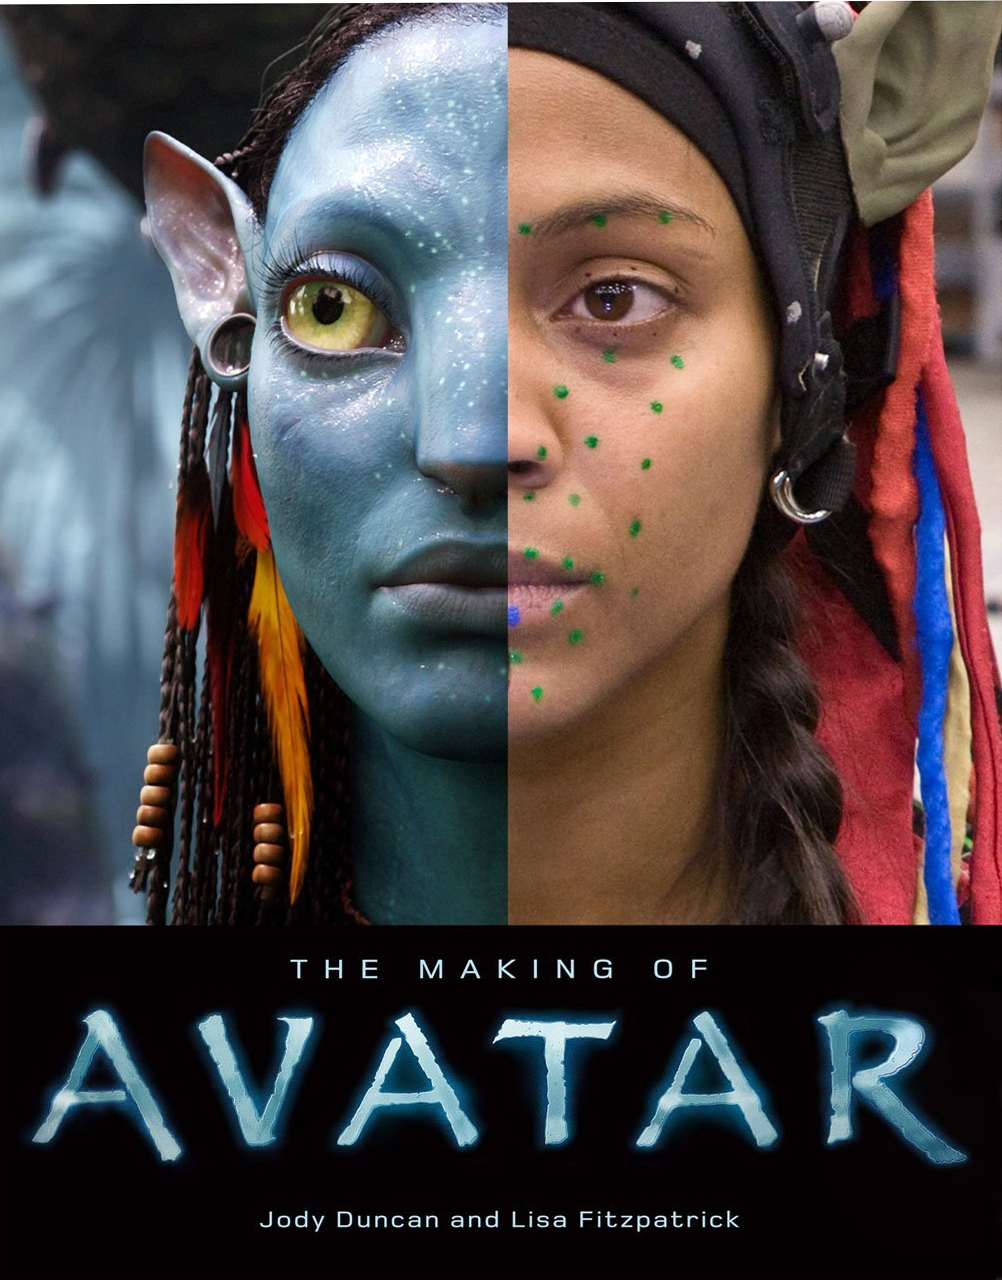 the history and making of avatar by james cameron Not only will cameron be filming an unprecedented number of films  avatar 2,  3, 4 and 5 director james cameron eyes terminator 6, 7 and 8.